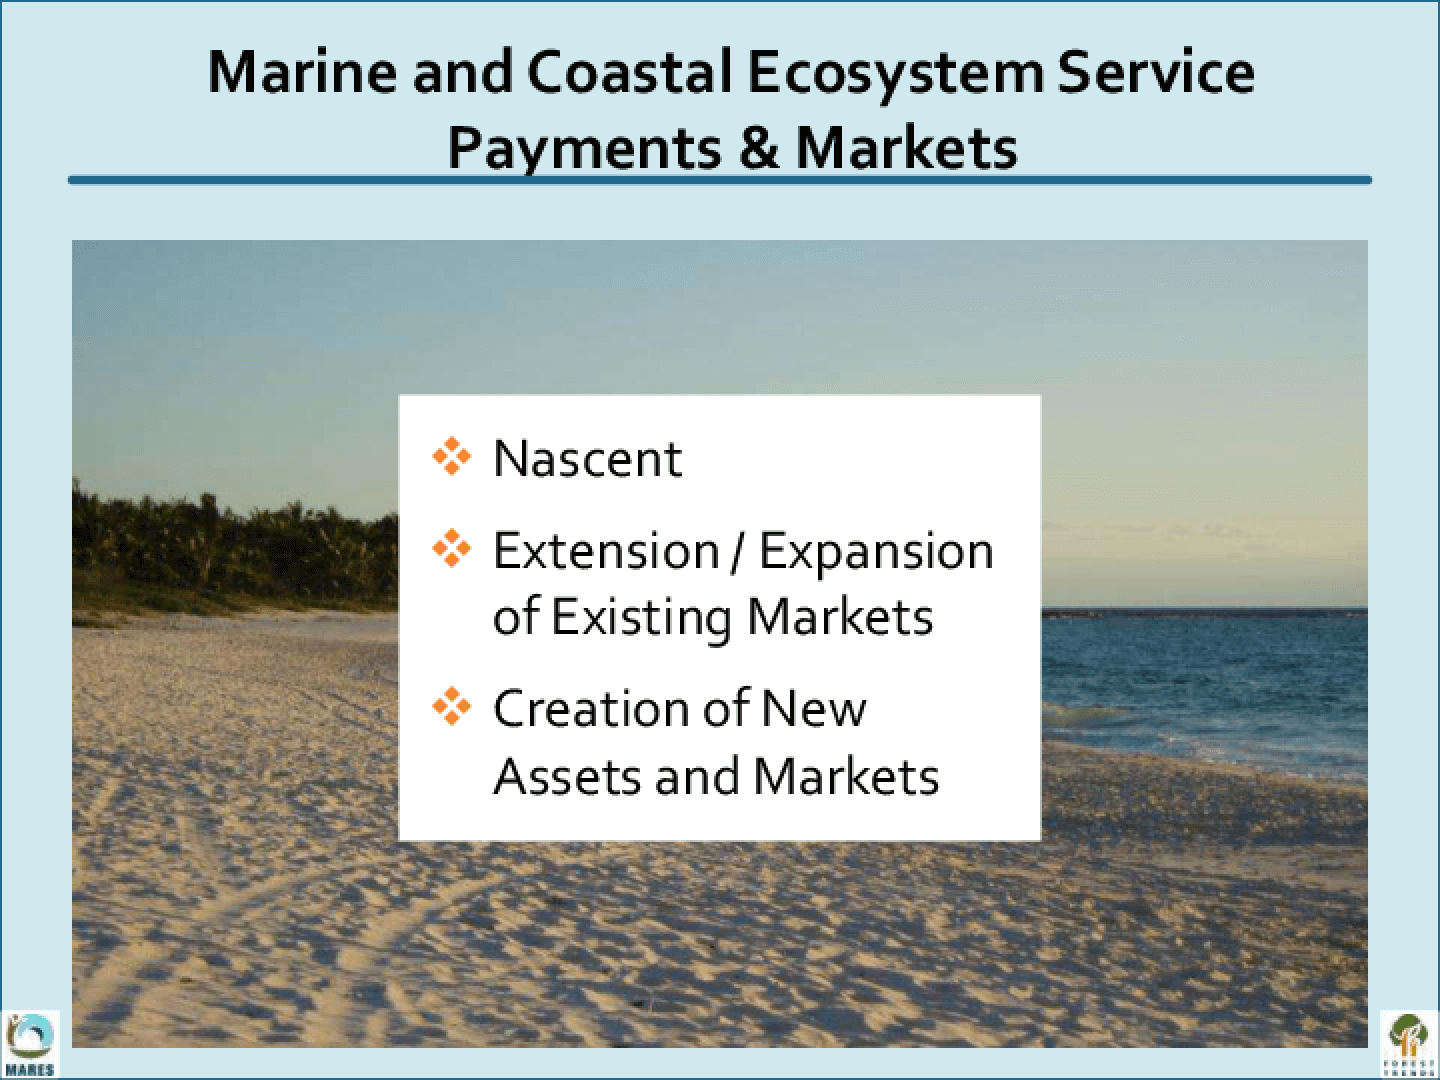 Marine and Coastal Ecosystem Service Payments and Markets